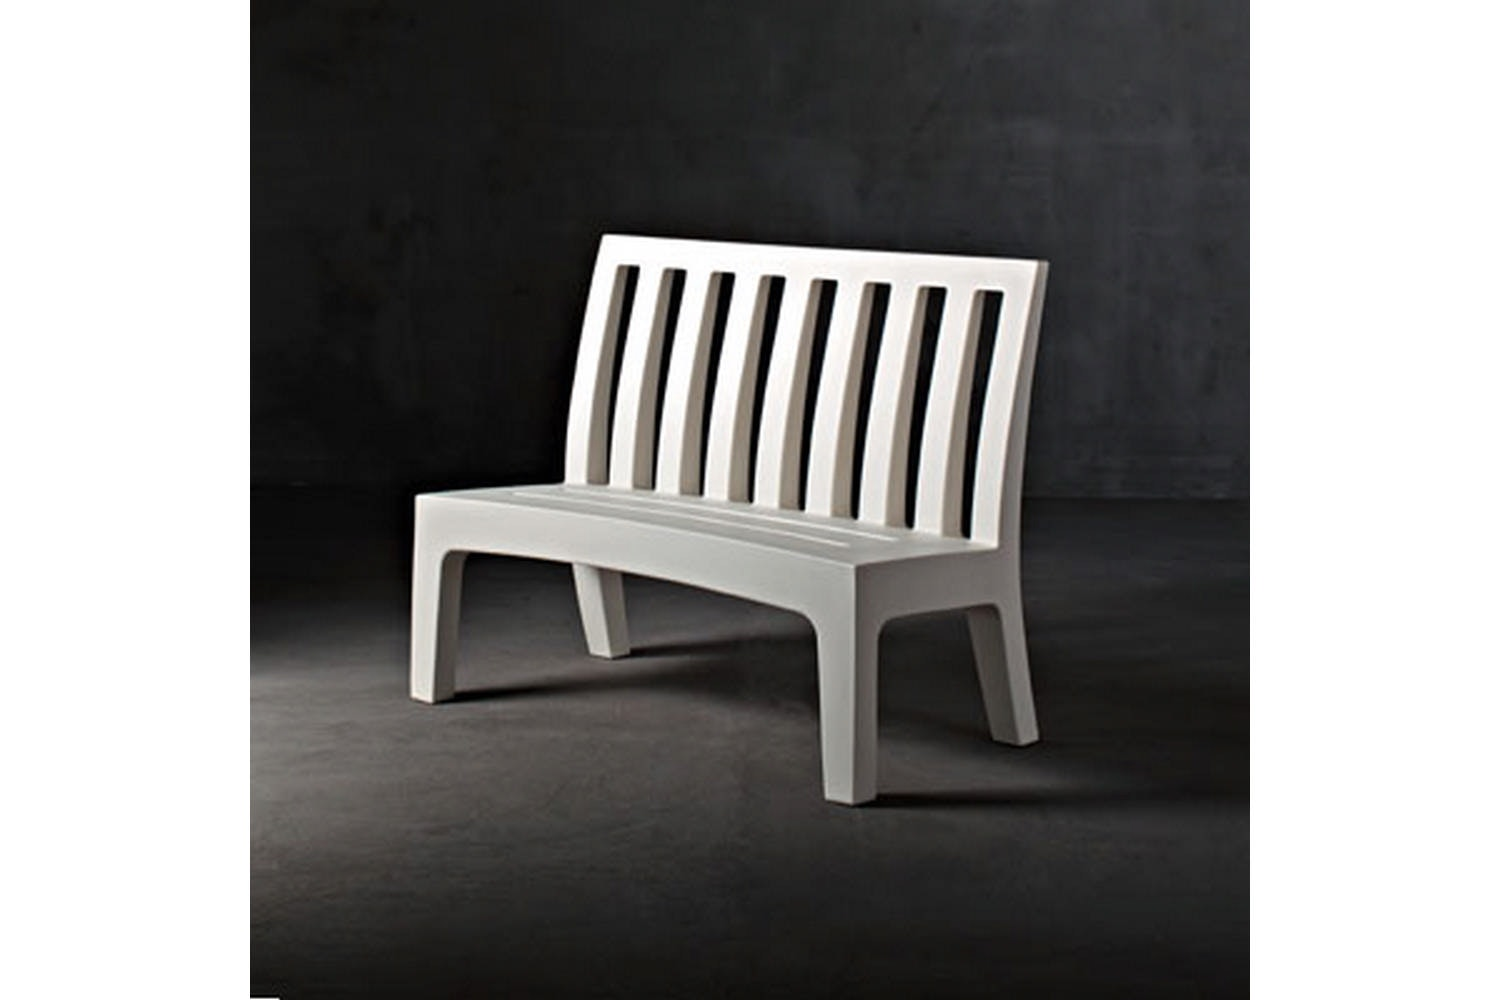 Romeo Bench by Paolo Rizzatto for Serralunga